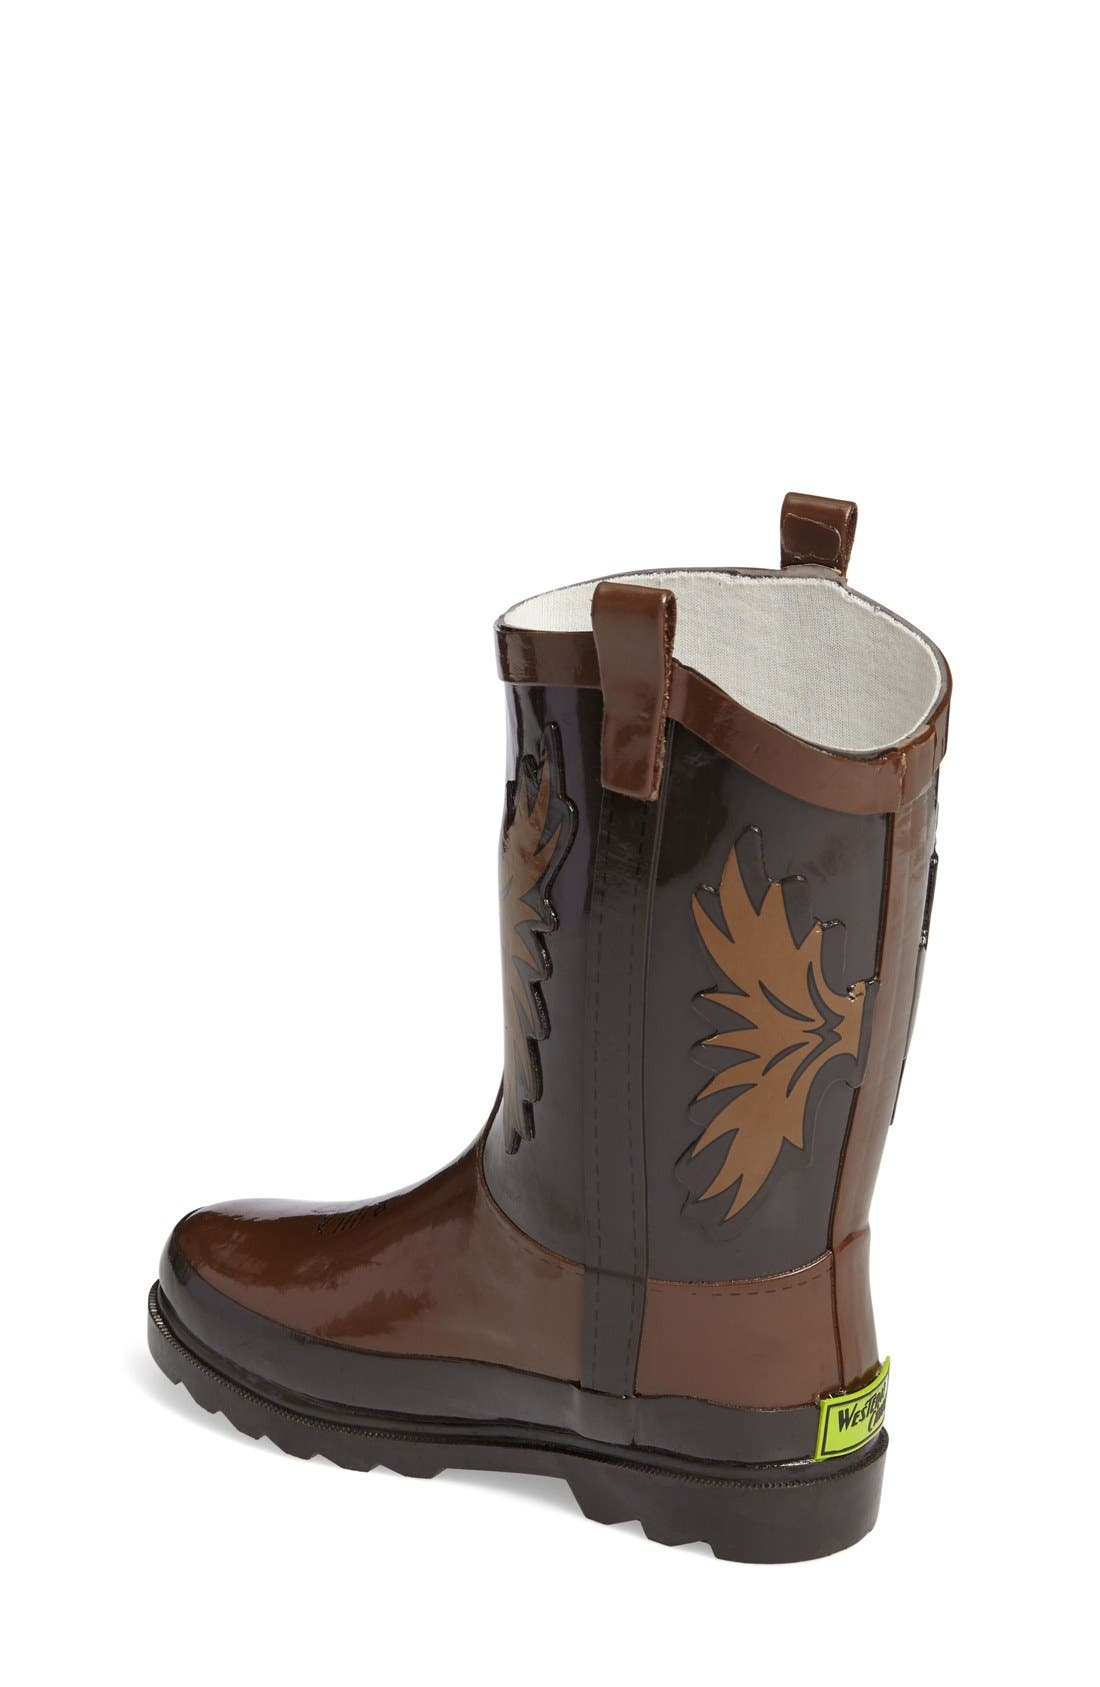 Alternate Image 2  - Western Chief Cowboy Waterproof Rain Boot (Walker, Toddler, Little Kid & Big Kid)